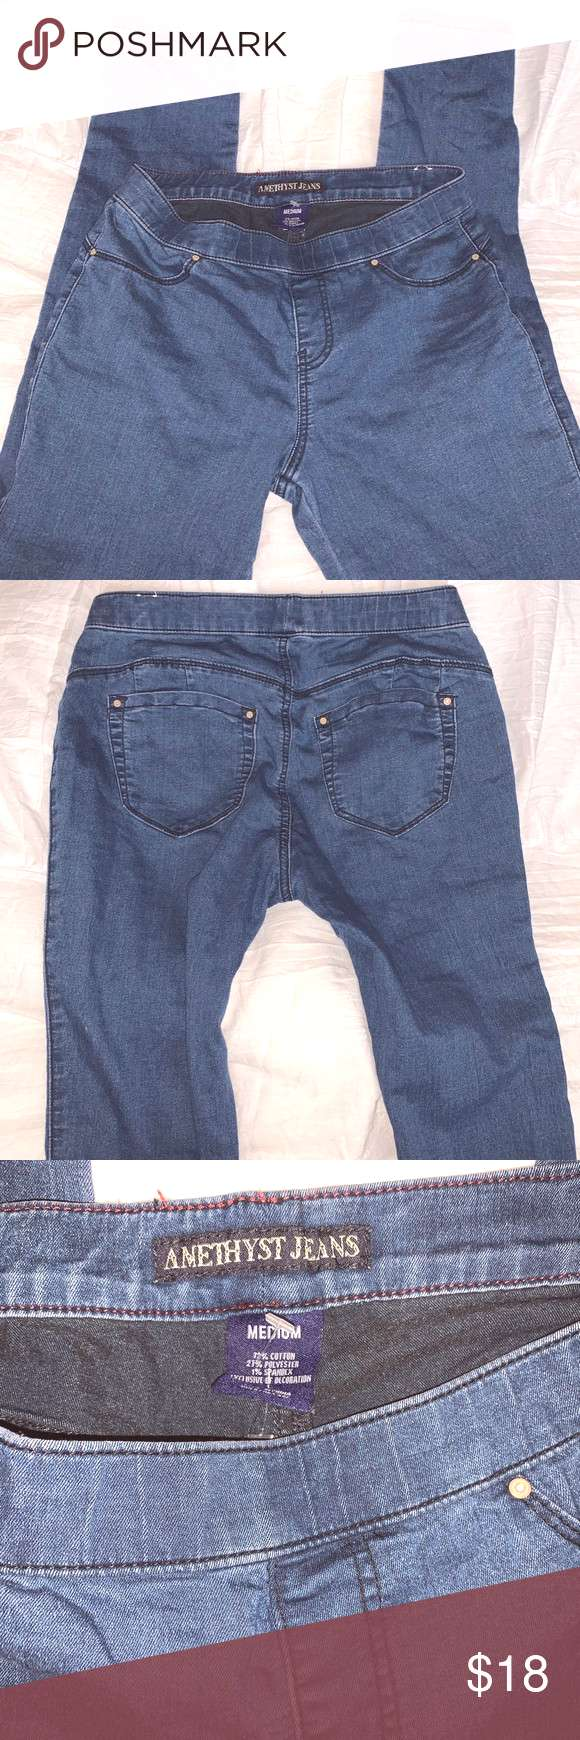 Amethyst pull on jeans size medium Amethyst pull on skinny jean jegging size medium I'd say would